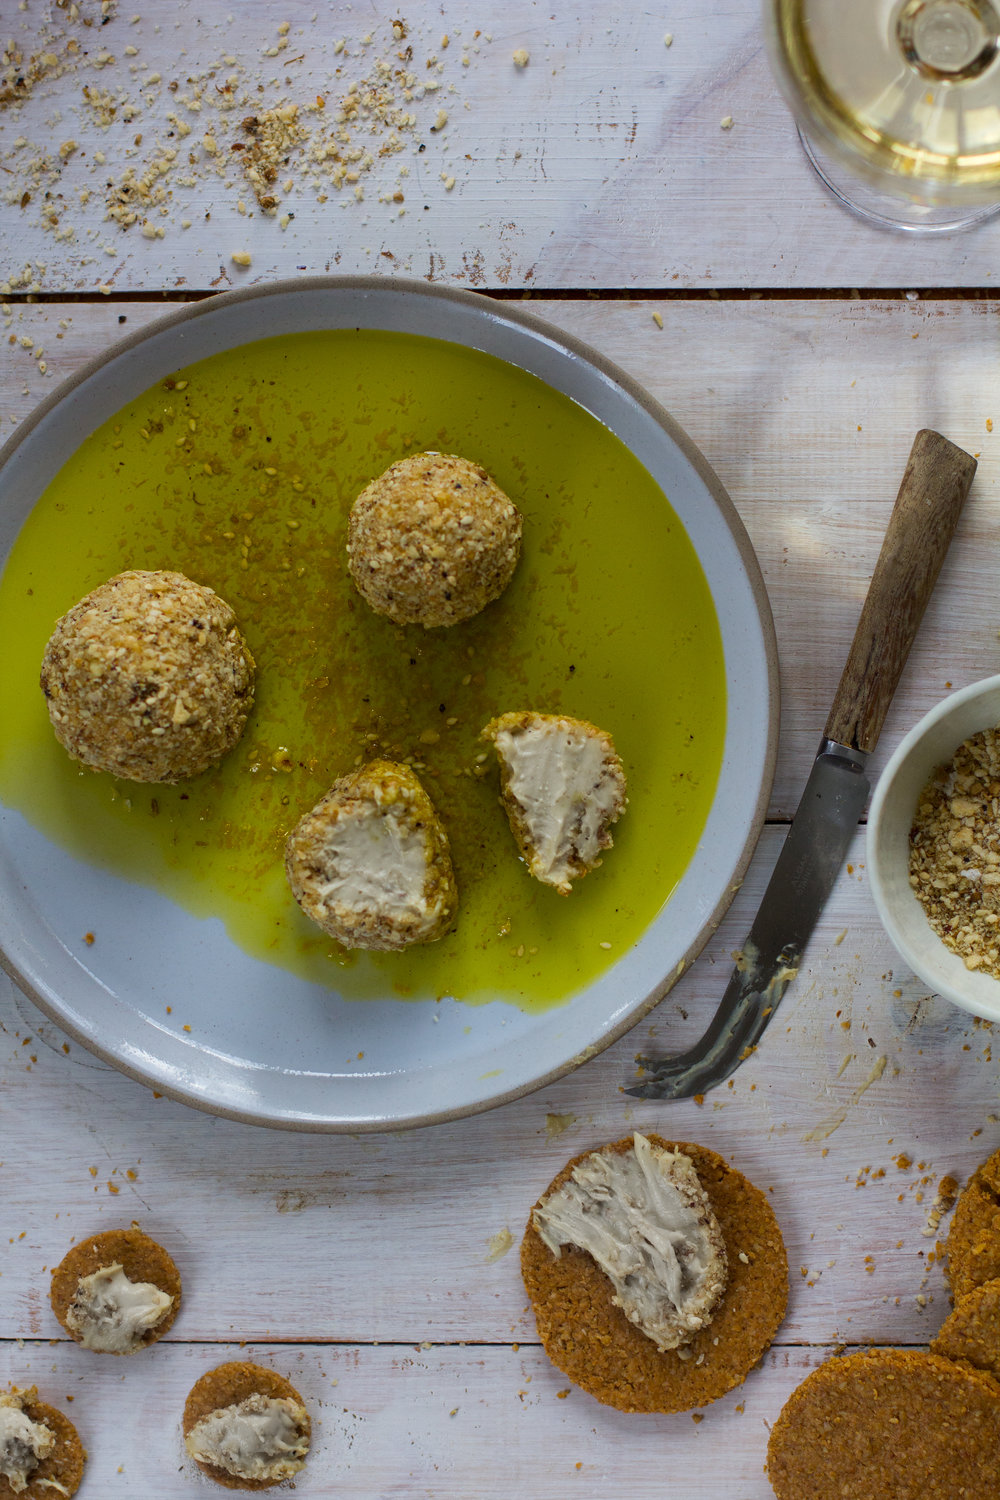 Toasty, spicy dukkah, lemony olive oil, and a creamy cashew cheese here combine to create a perfect trifecta of snacking goodness.